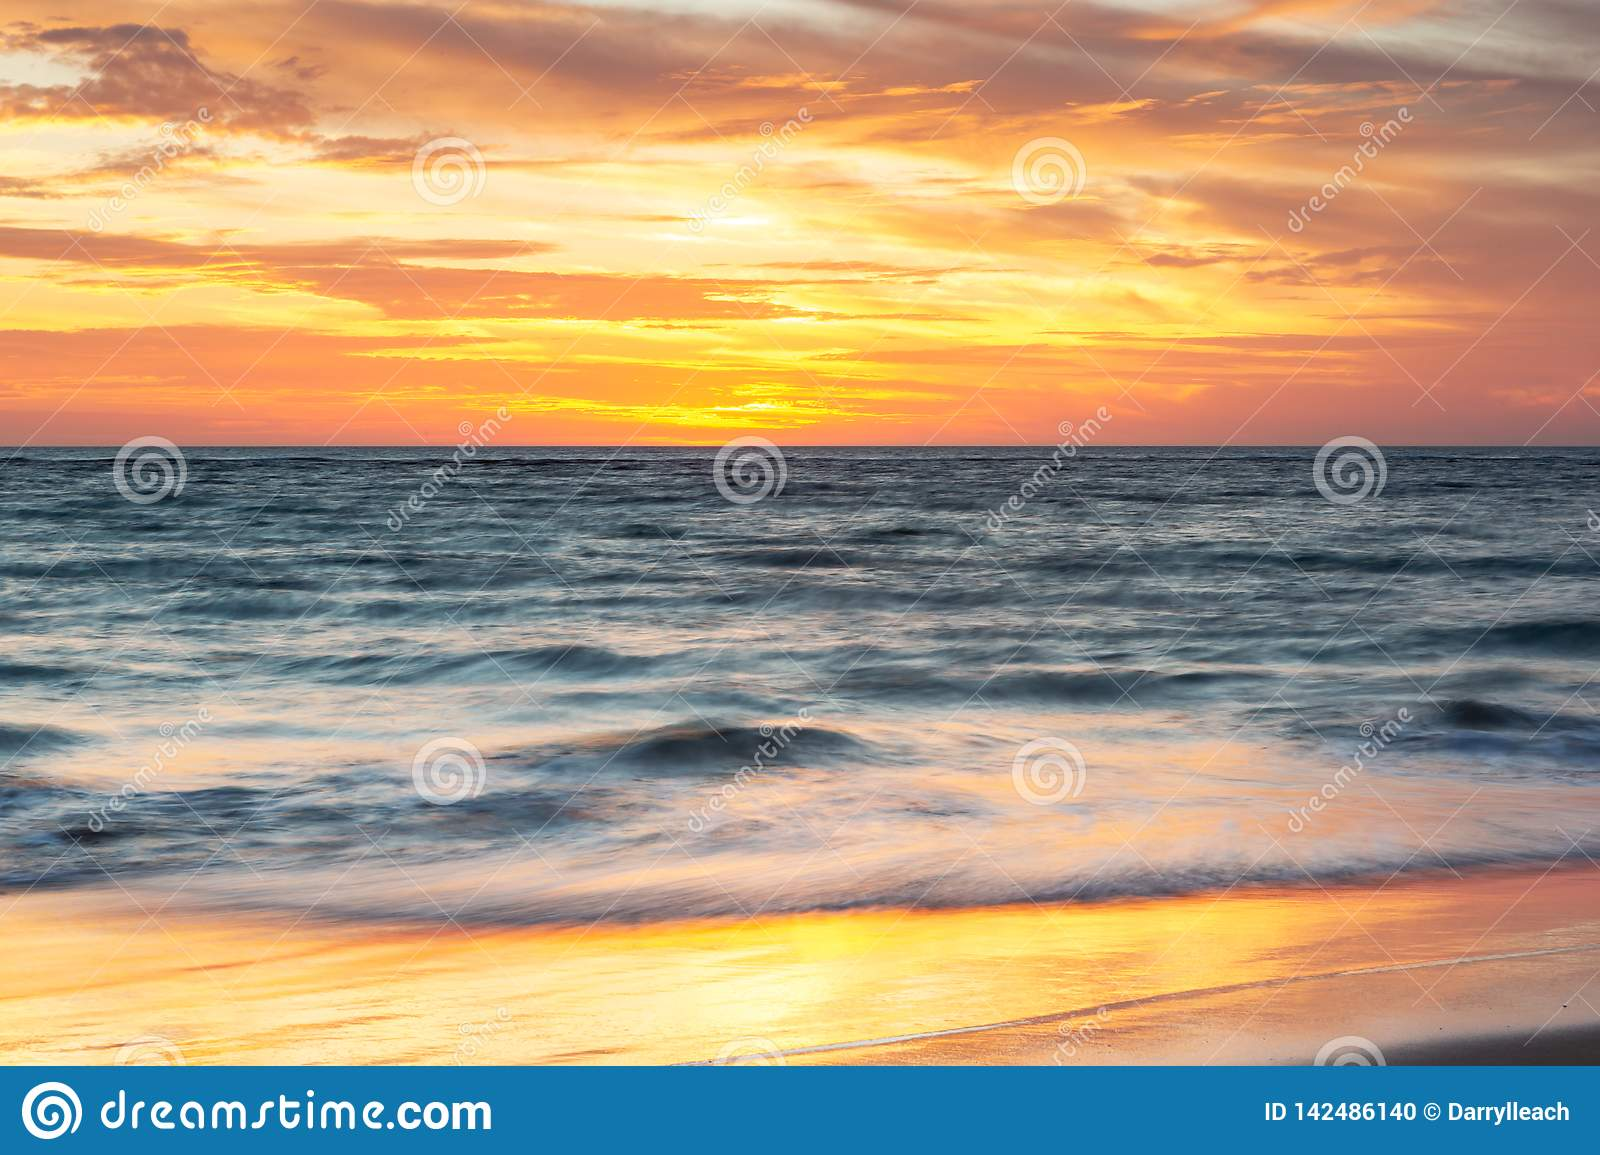 A beautiful sunset at Port Noarlunga with sunset reflections on the sand at Port Noarlunga South Australia on 18th March 2019